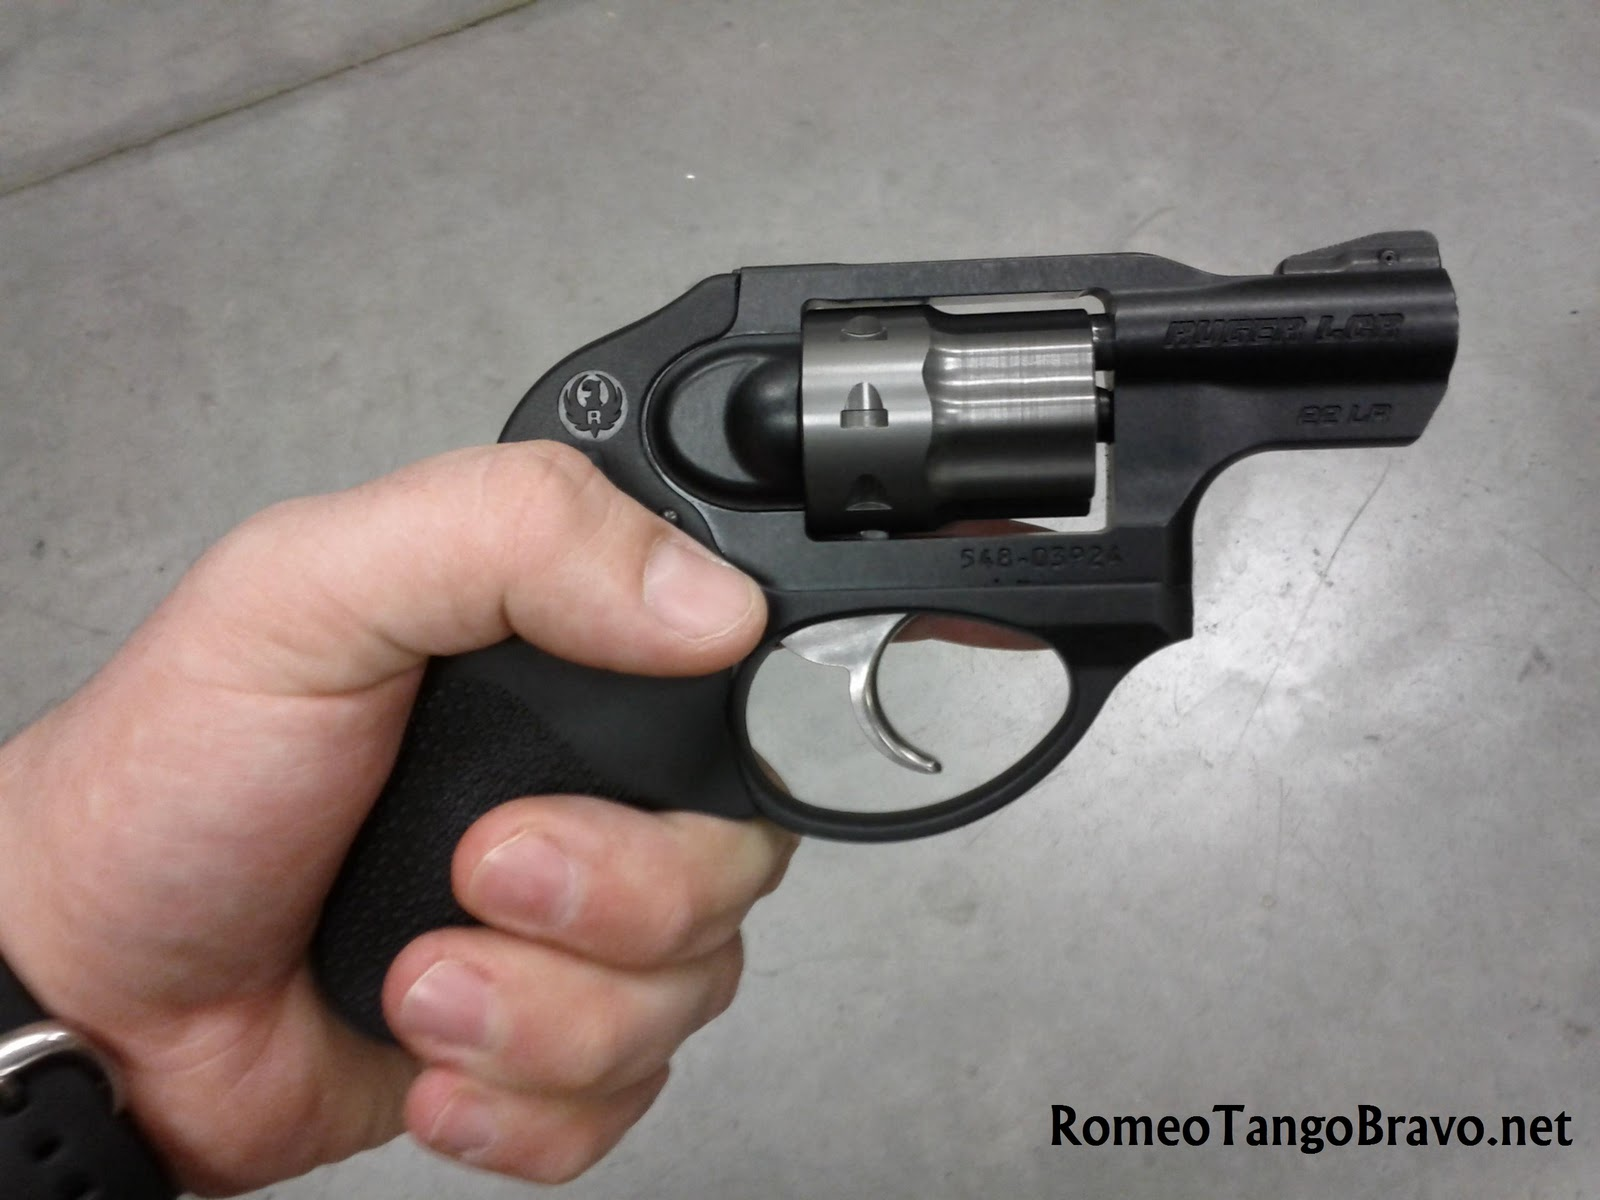 Lcr In Hand : Romeotangobravo ruger lcr hits the shelves